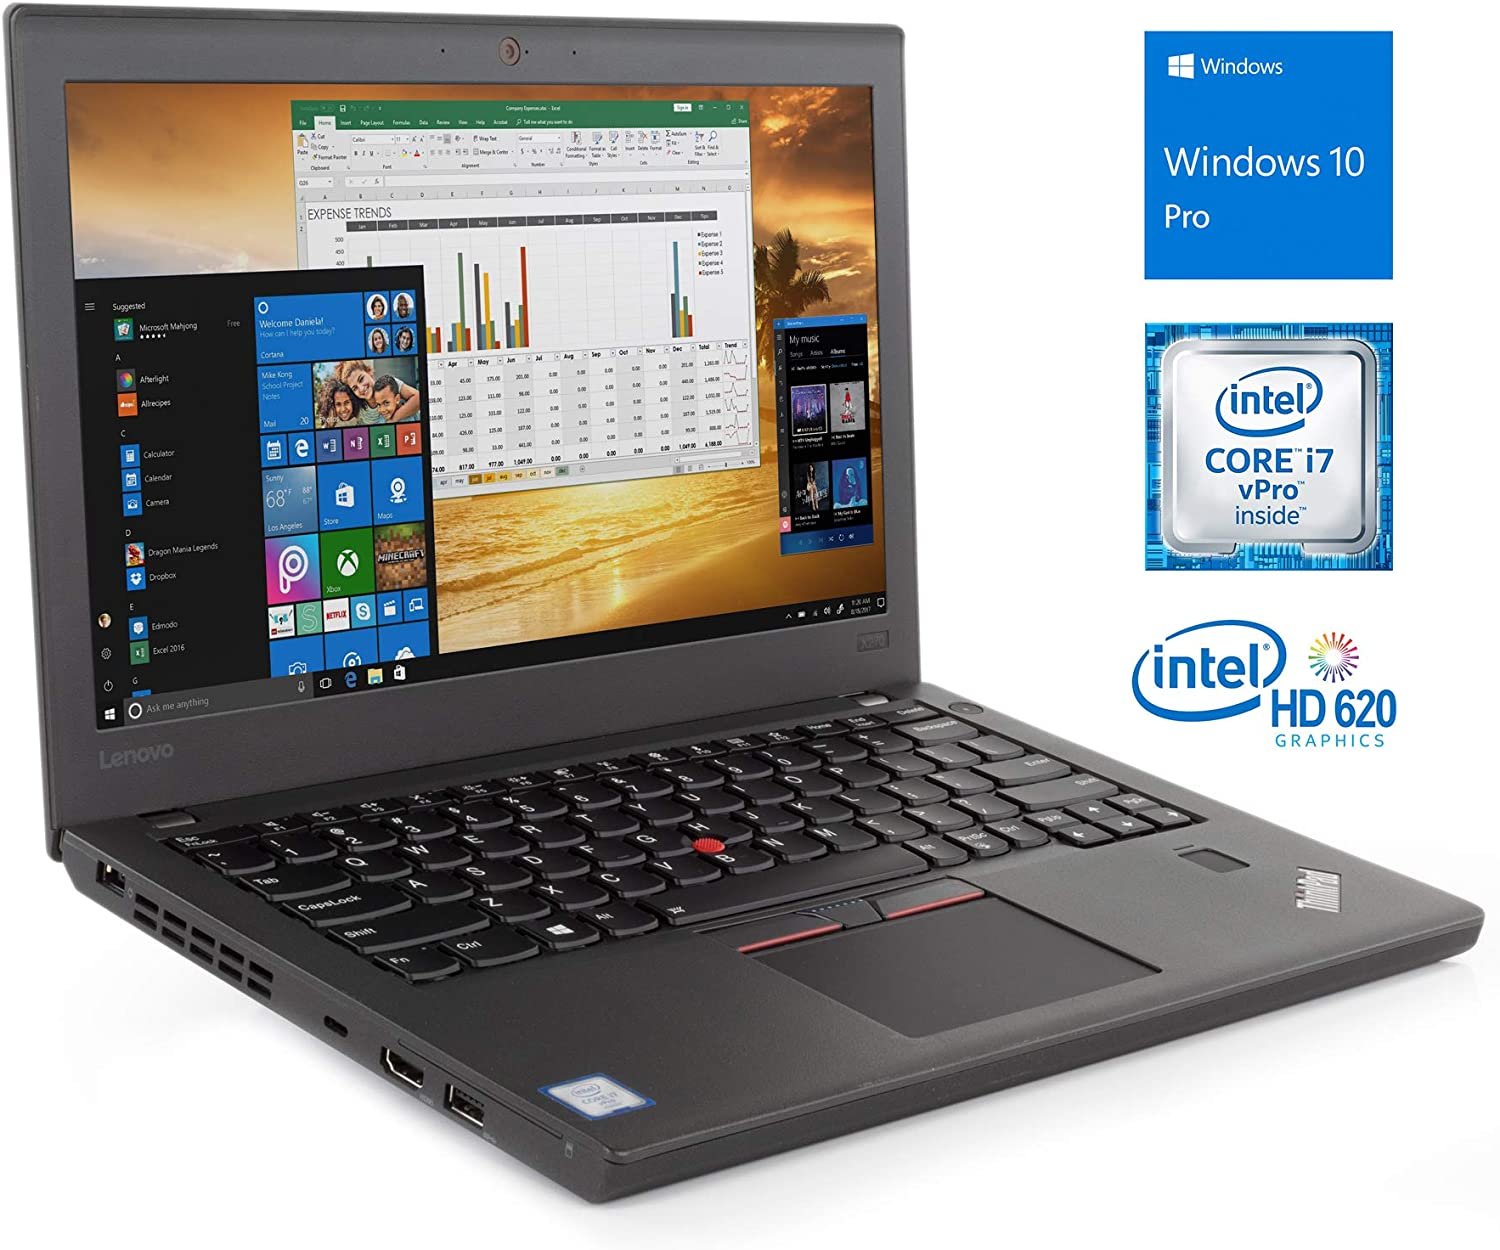 "Lenovo ThinkPad X270 Notebook, 12.5"" IPS HD, Intel Dual-Core i7-6600U Upto 3.4GHz, RAM, SSD, HDMI, Card Reader, Backlit Keyboard, Wi-Fi, Bluetooth, Windows 10 Pro (8GB RAM 